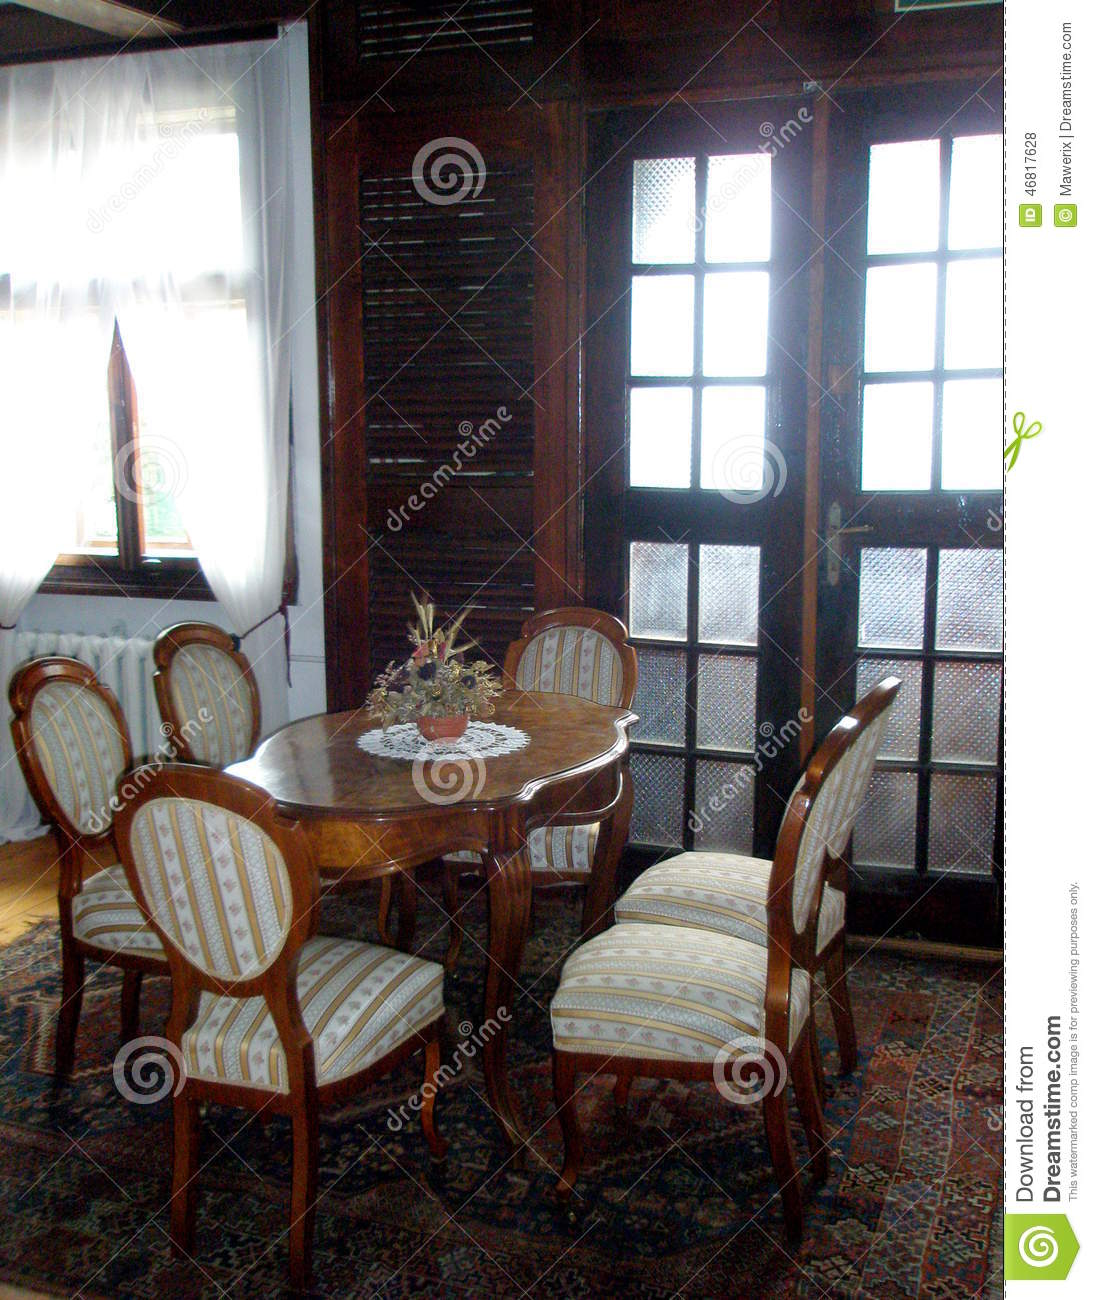 Anime Royal Dining Room: Royal Dining Table Stock Photo